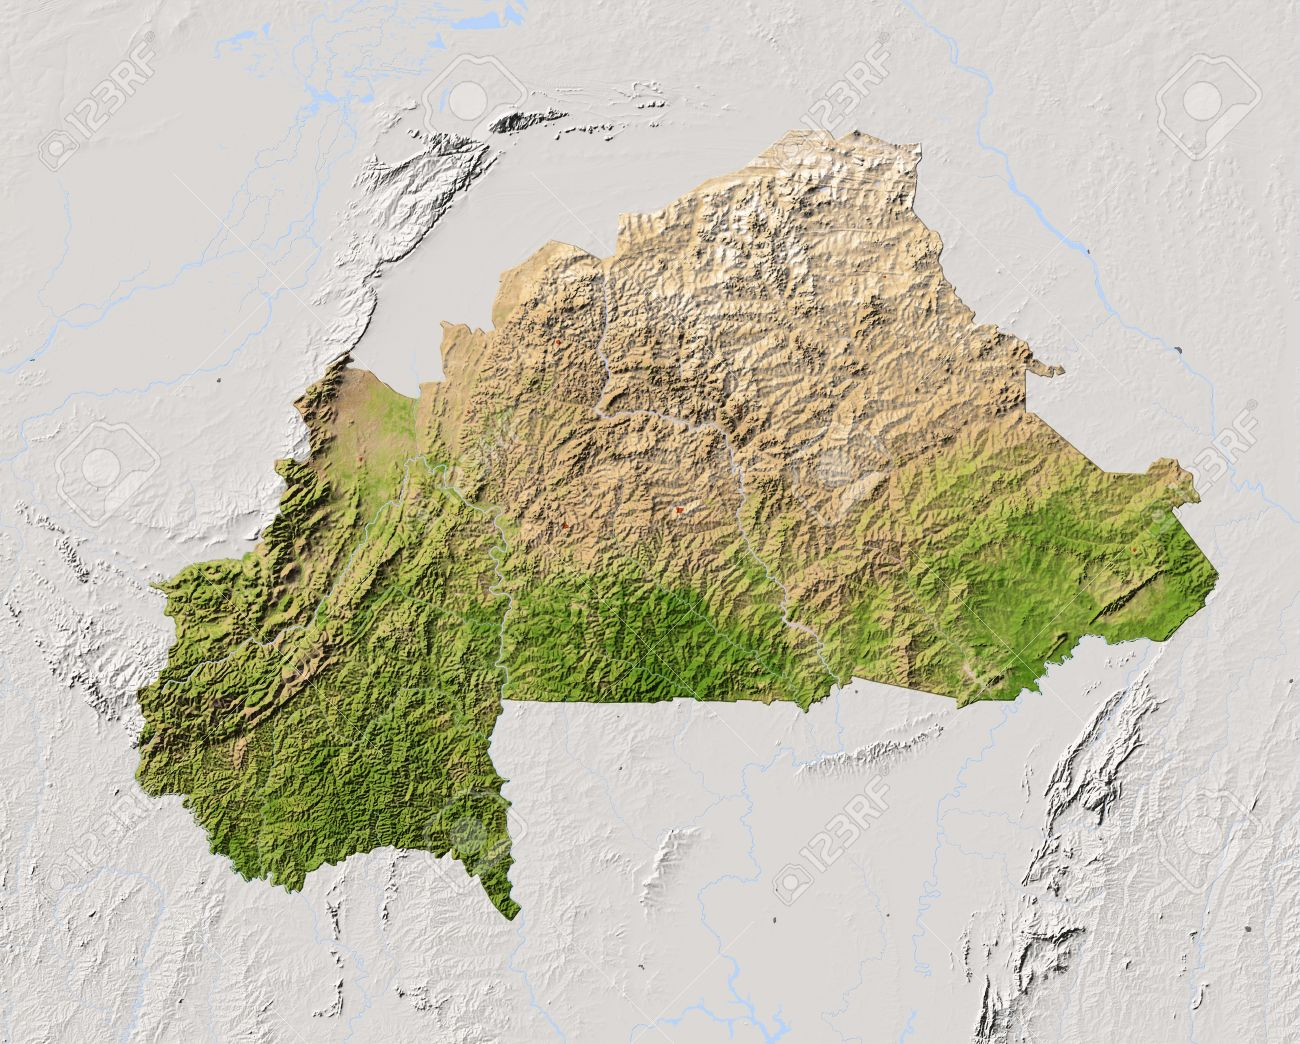 burkina faso relief vegetation-